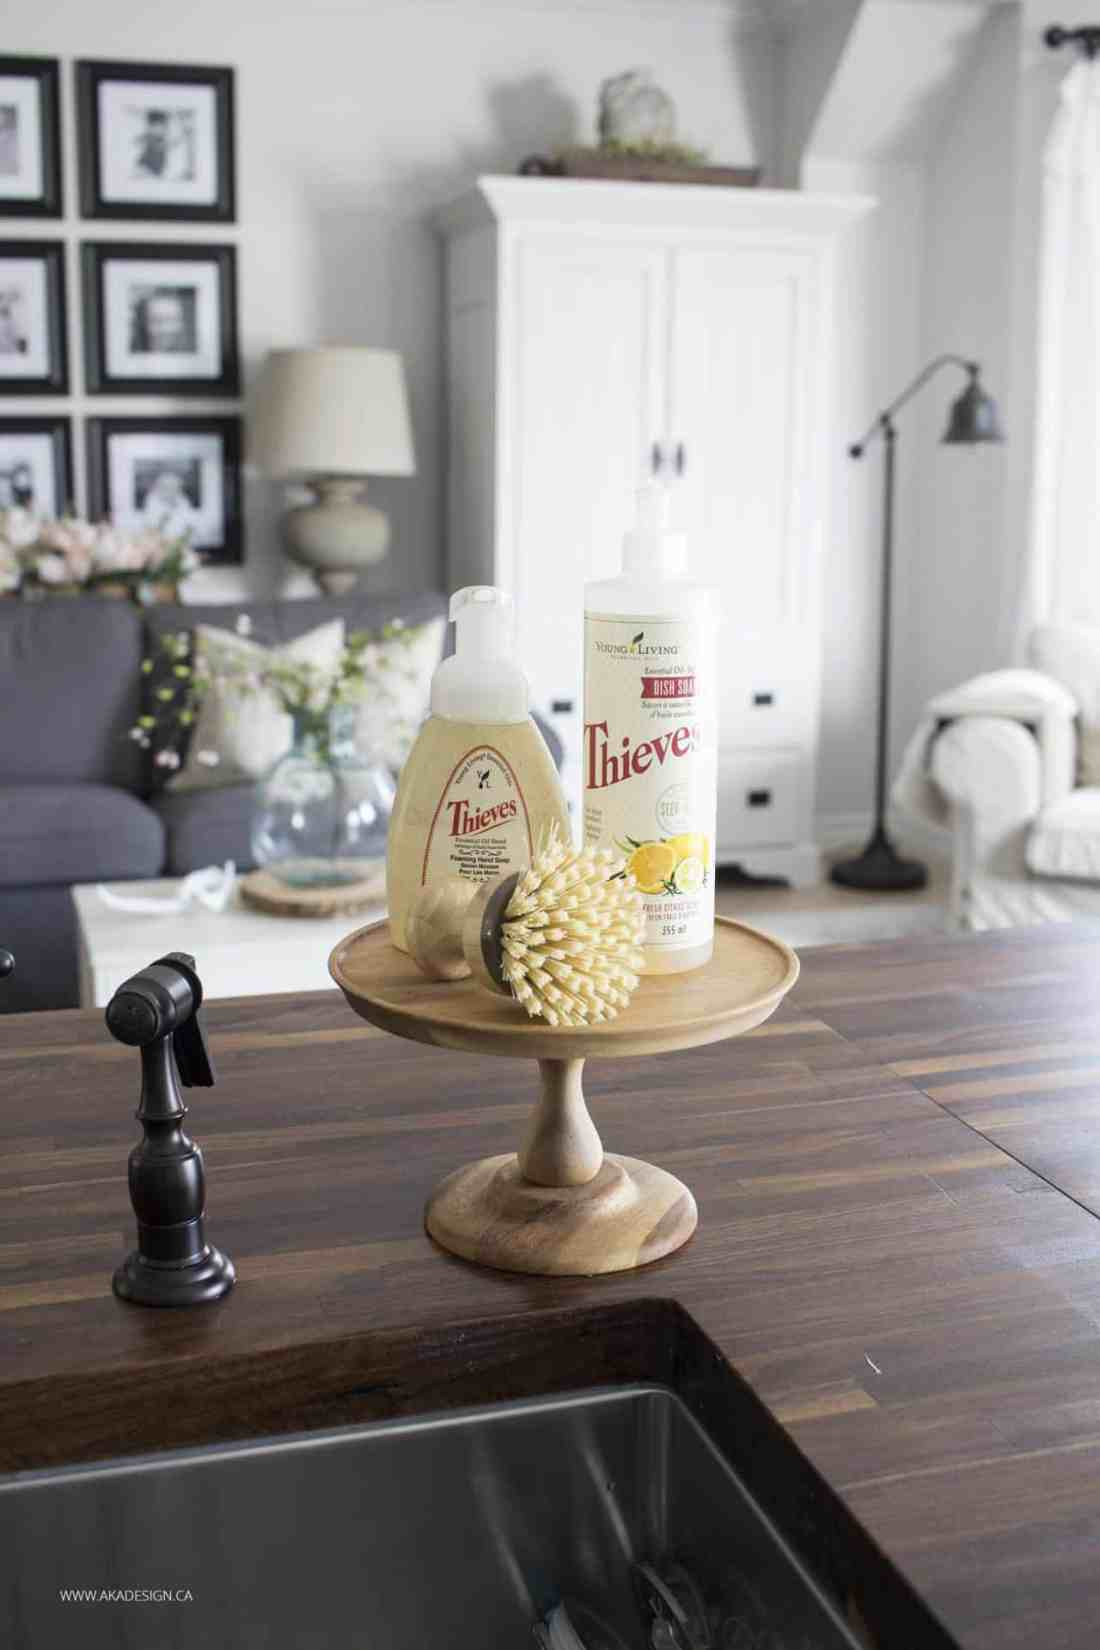 theives kitchen soap and hand soap on cake stand